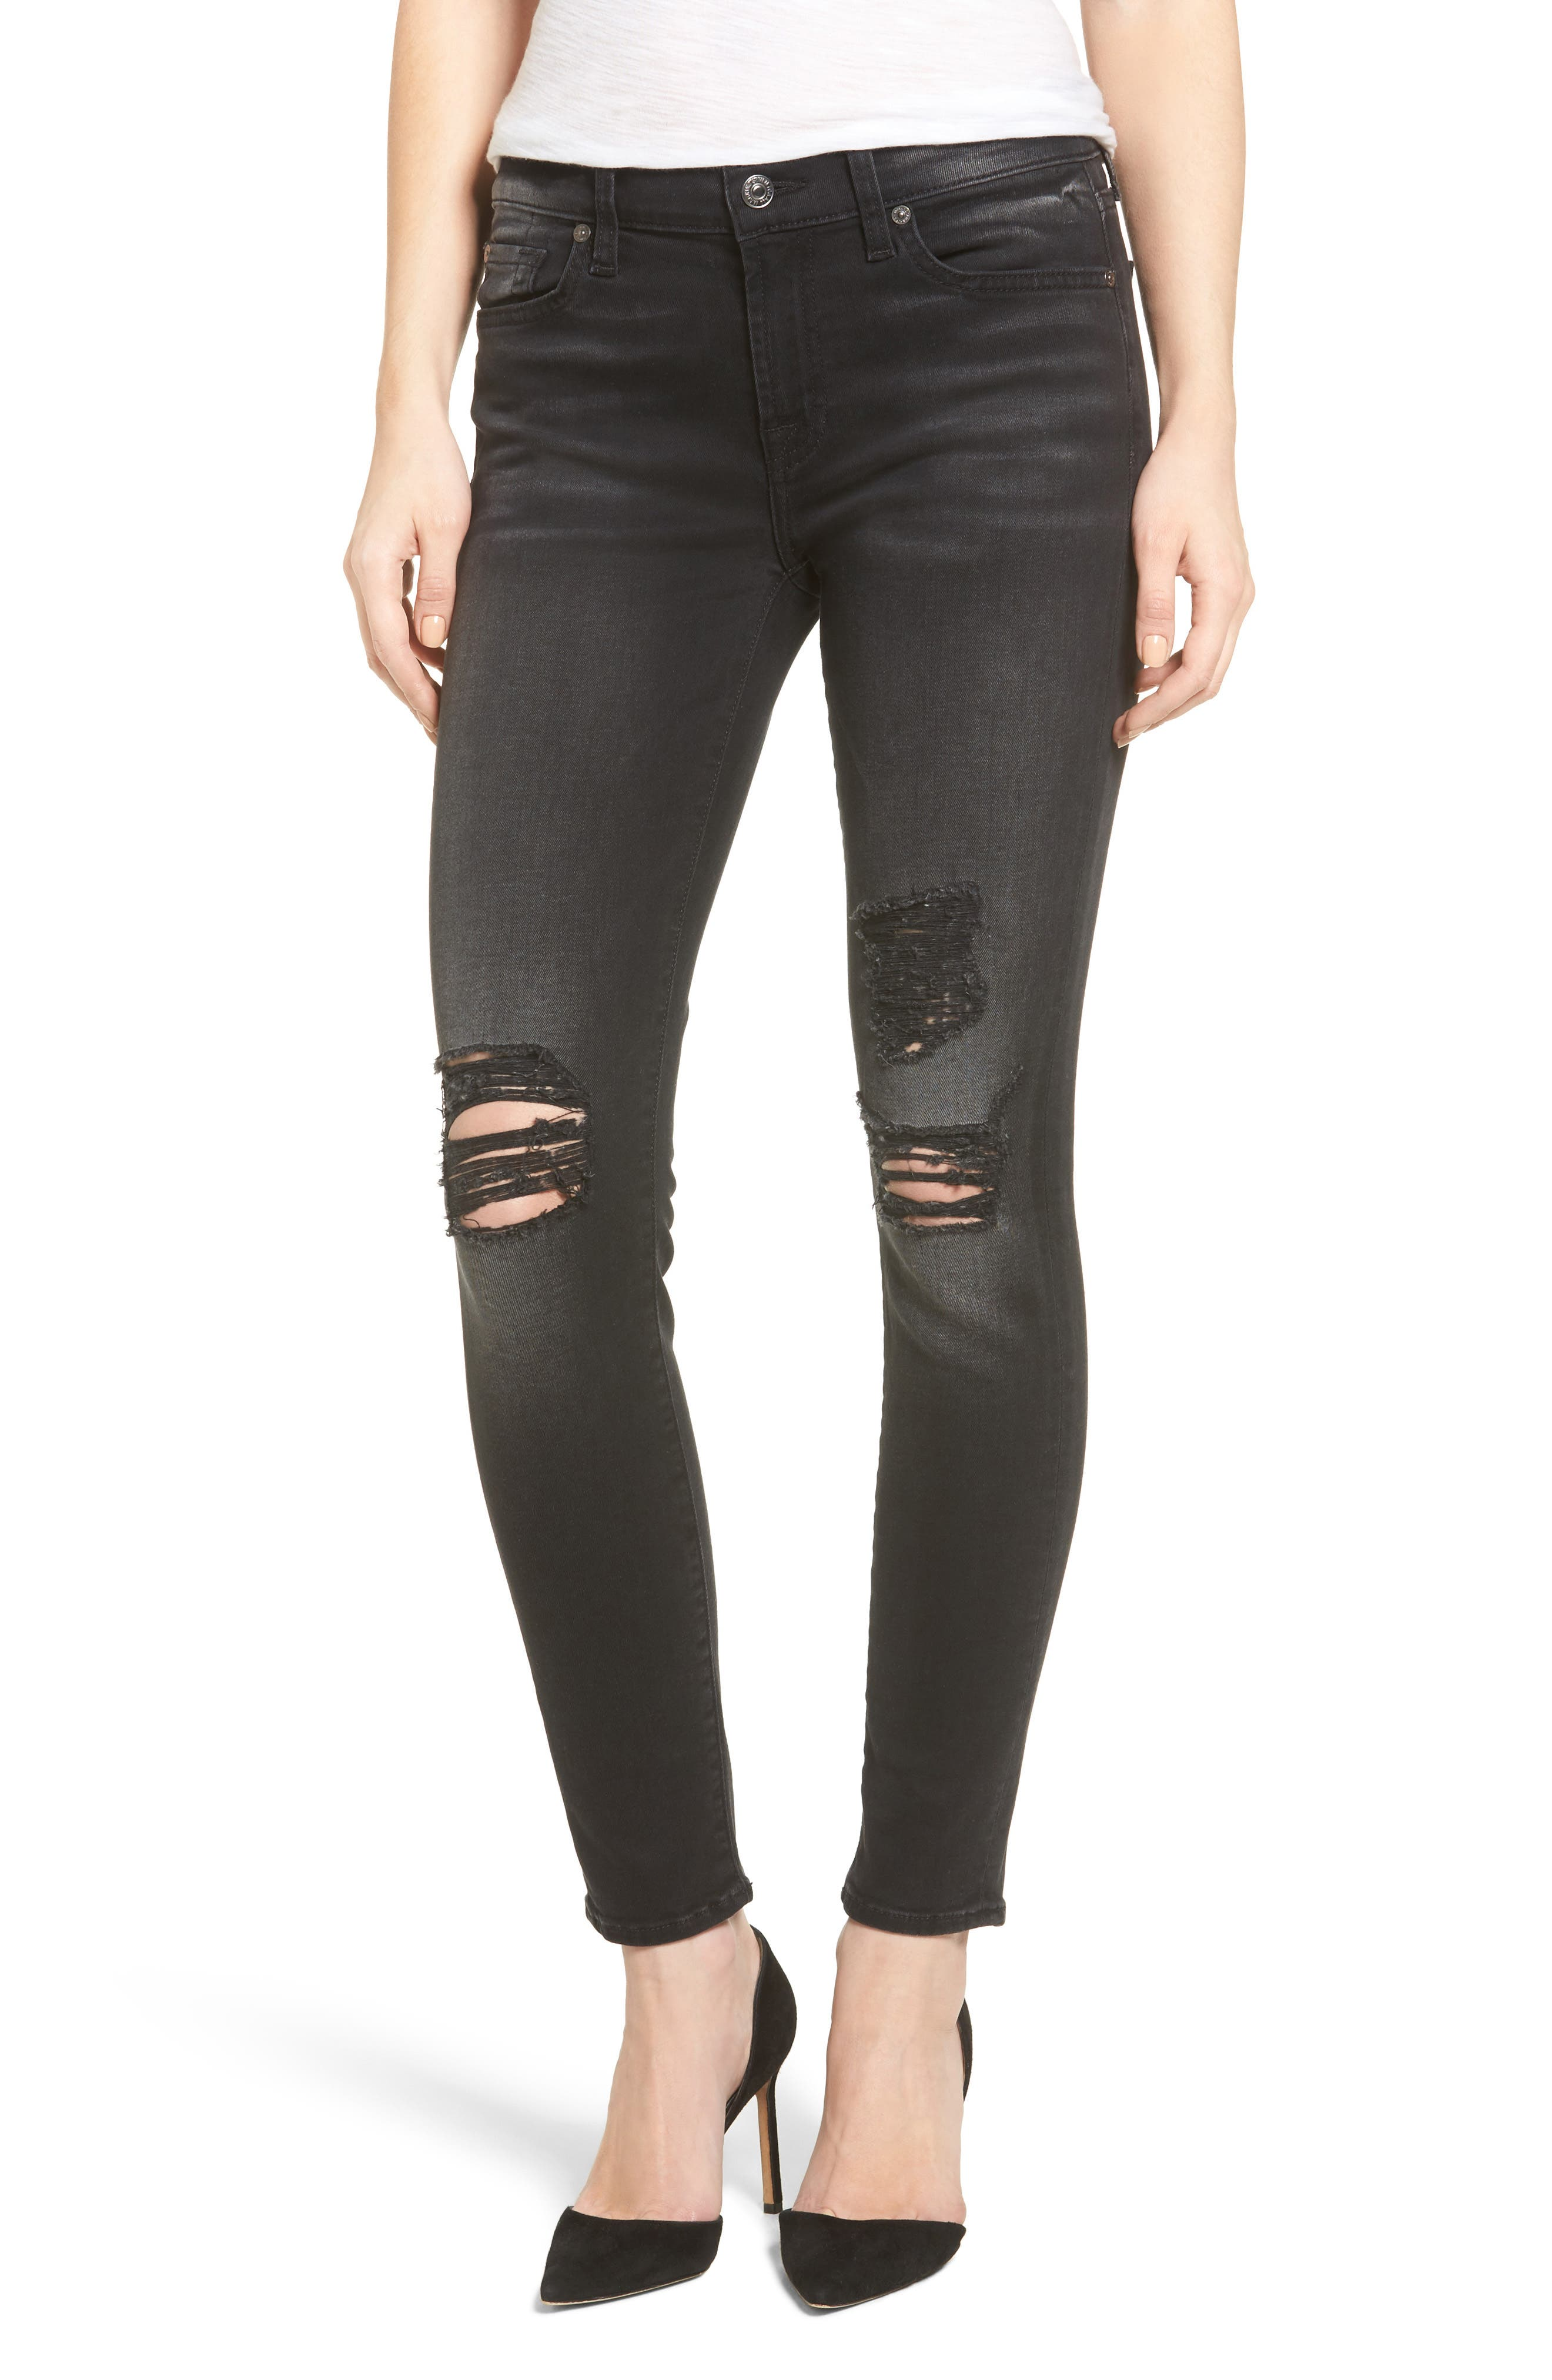 Seven7 The Ankle Skinny Jeans,                         Main,                         color, 004